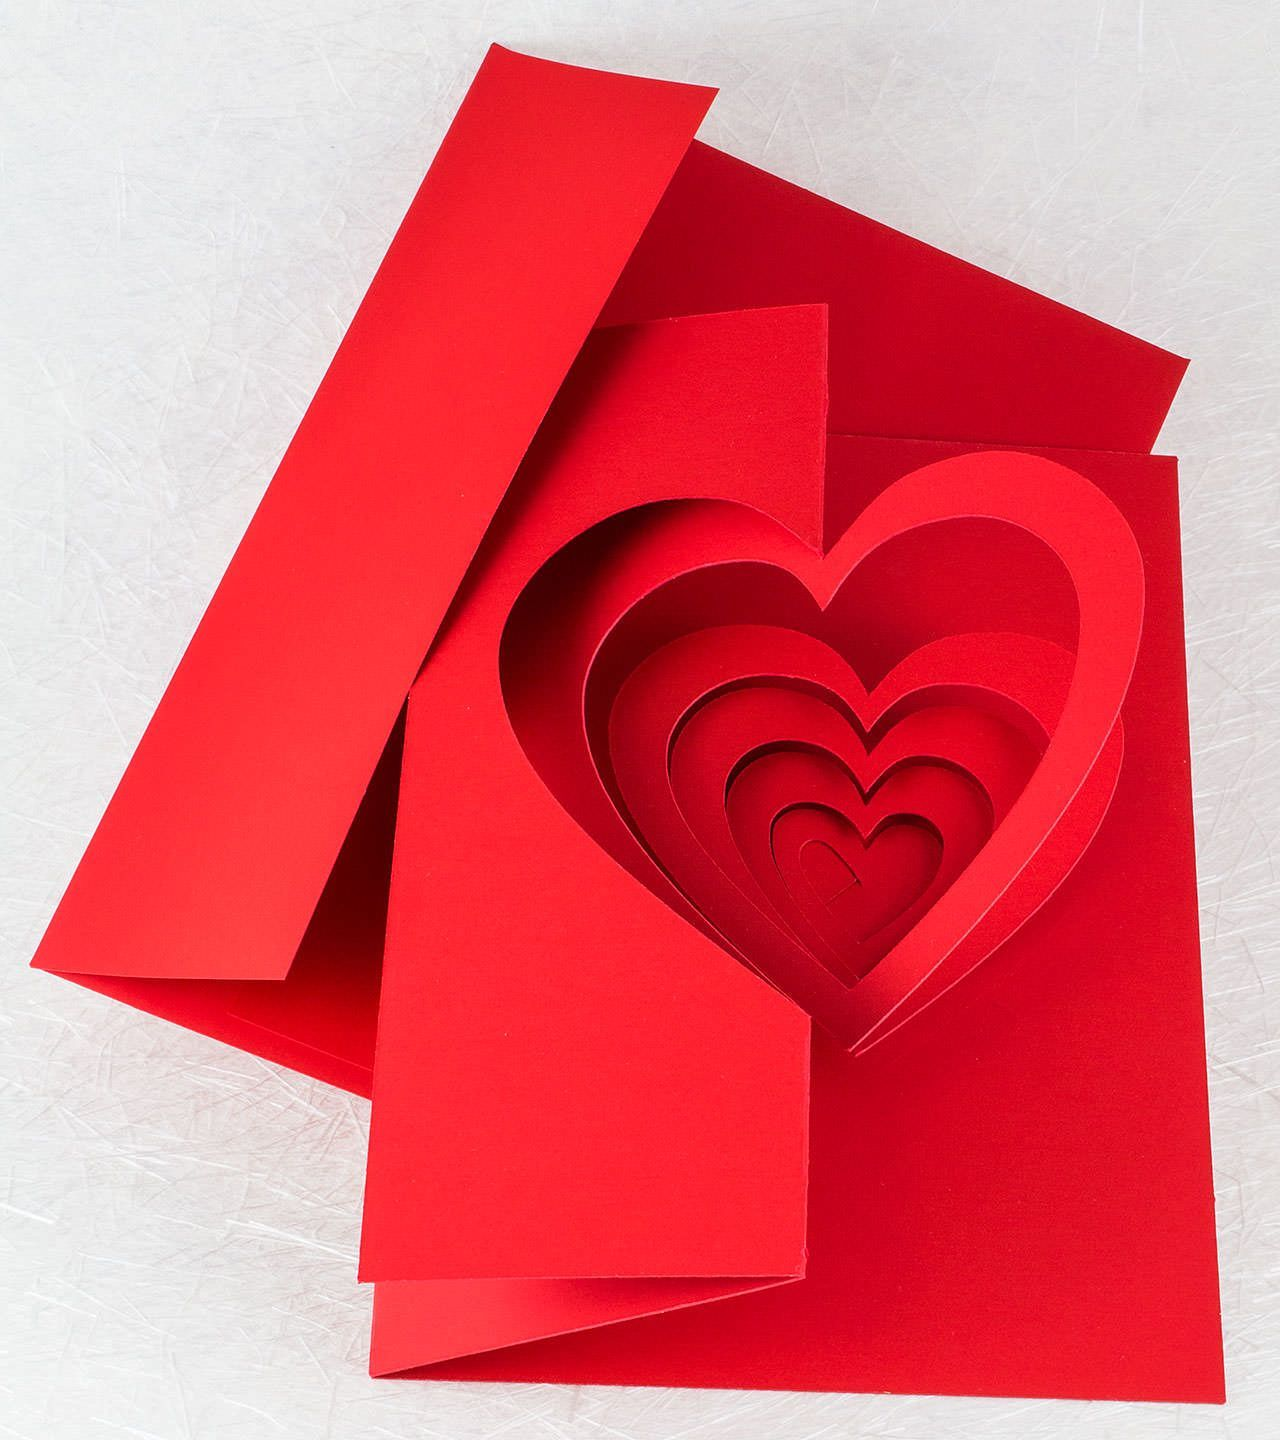 Helical Heart Valentine Pop Up Card With Envelope Heart Pop Up Card Pop Up Card Templates Pop Up Valentine Cards